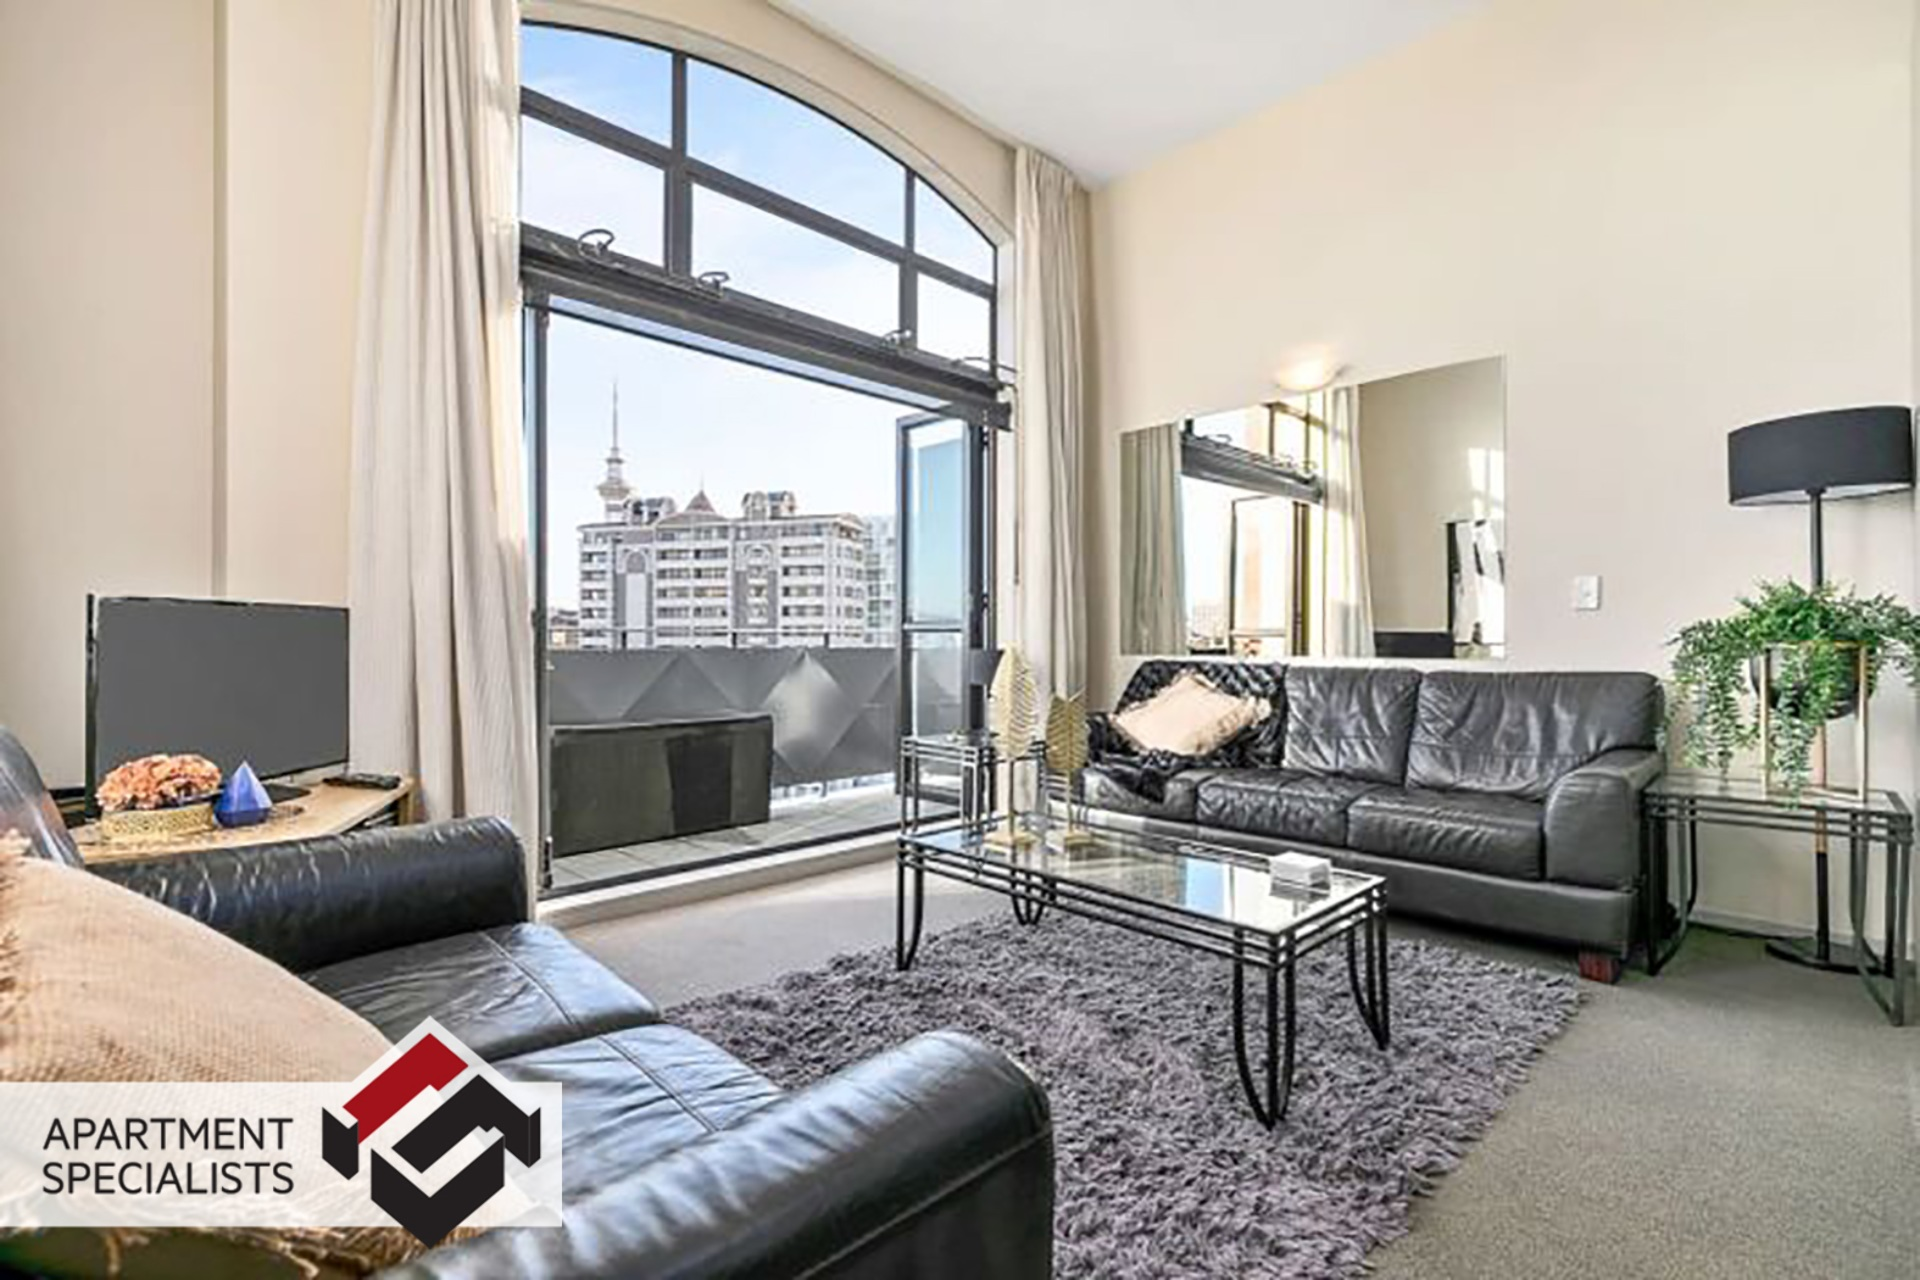 3 | 50 Eden Crescent, City Centre | Apartment Specialists